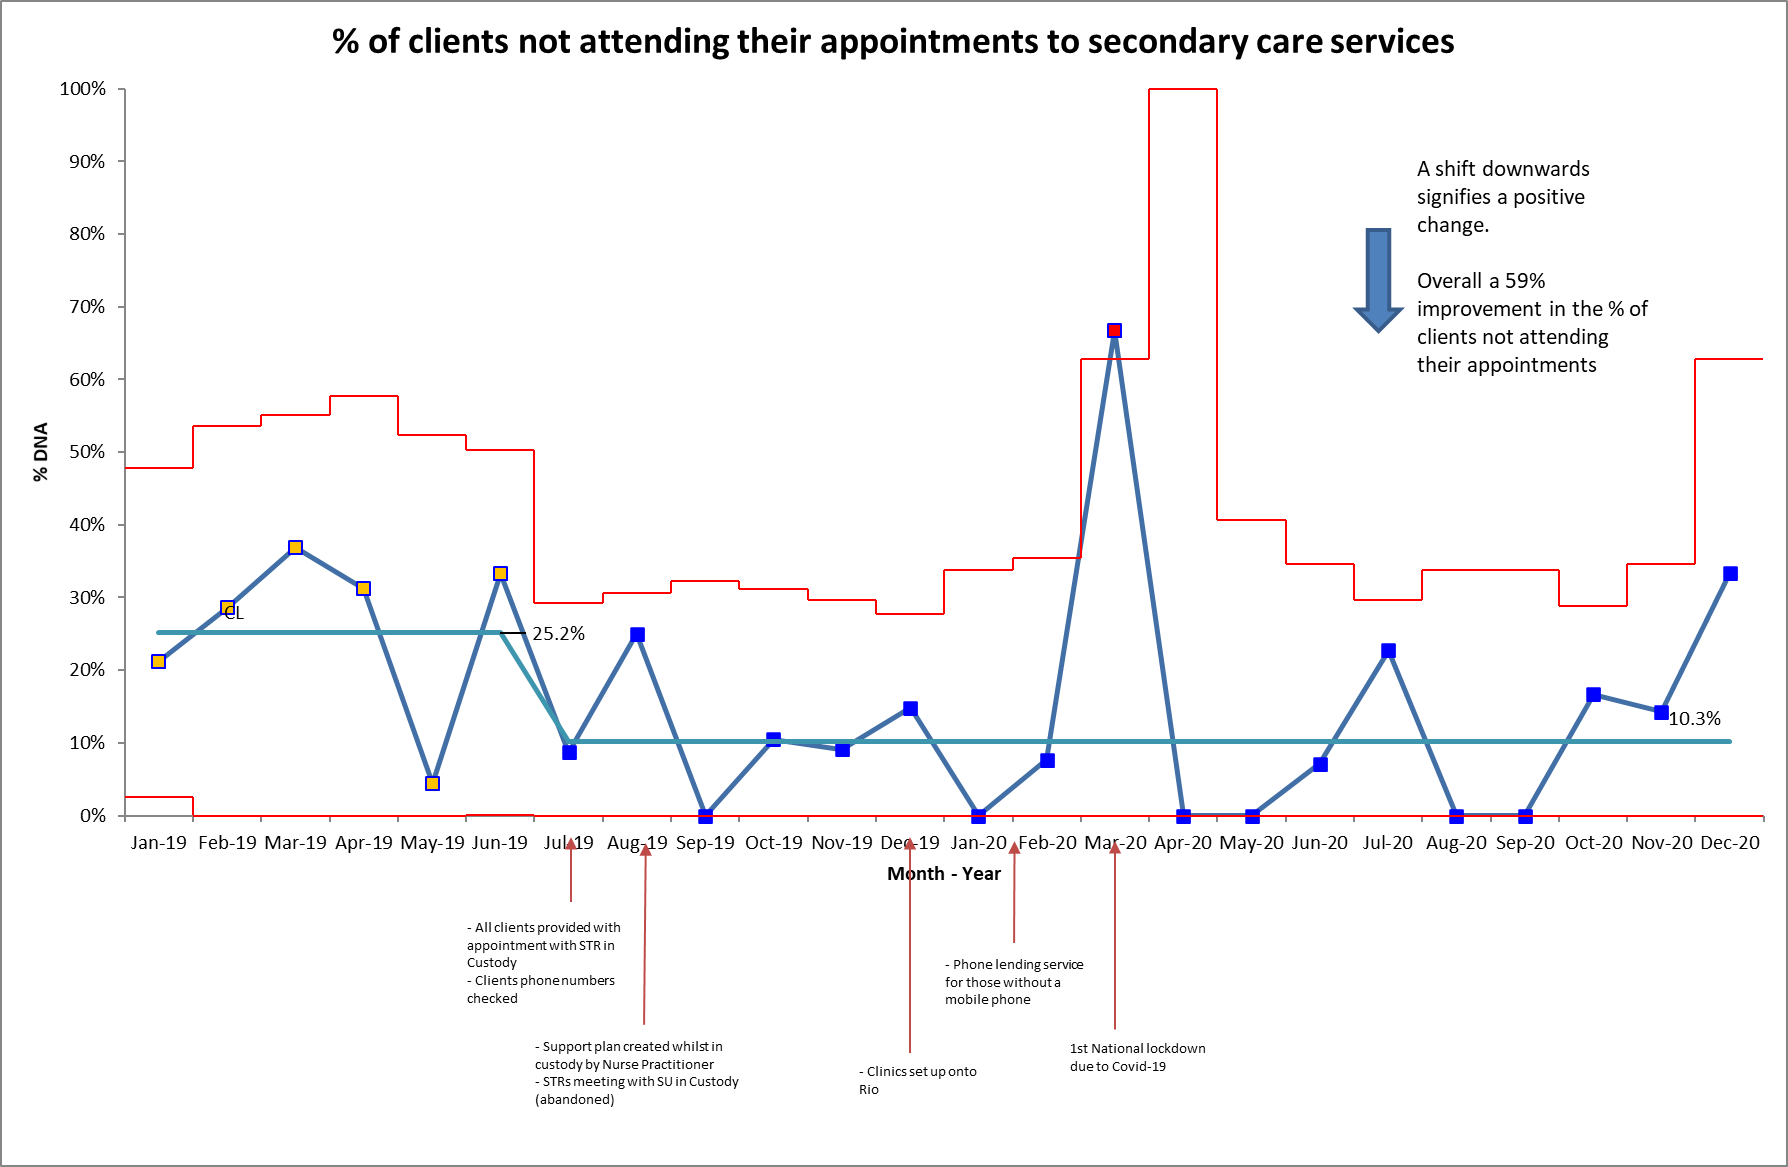 Percentage of clients not attending their appointments to secondary care services